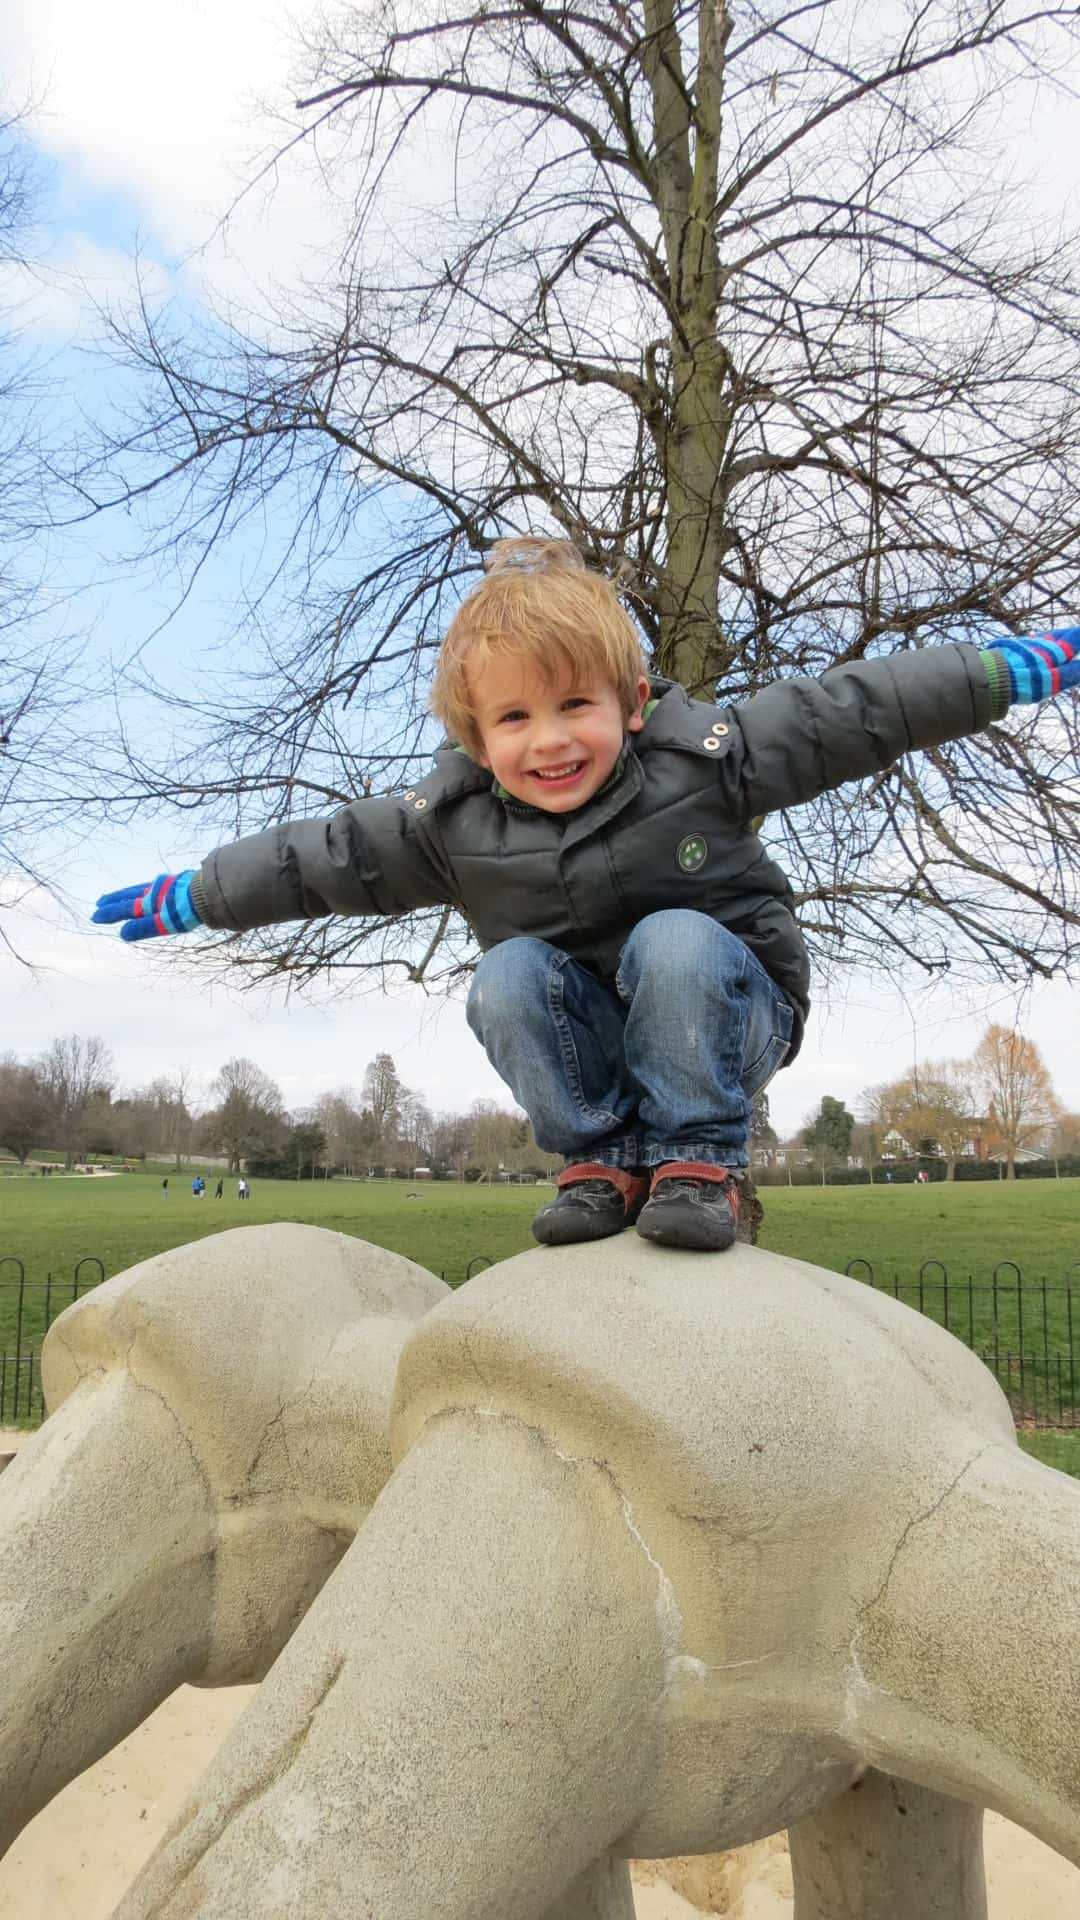 http://thimbleandtwig.com/lovely-adventures/dinosaurs-and-crystal-palace-park-1-things-to-do-in-south-east-london-with-kids/